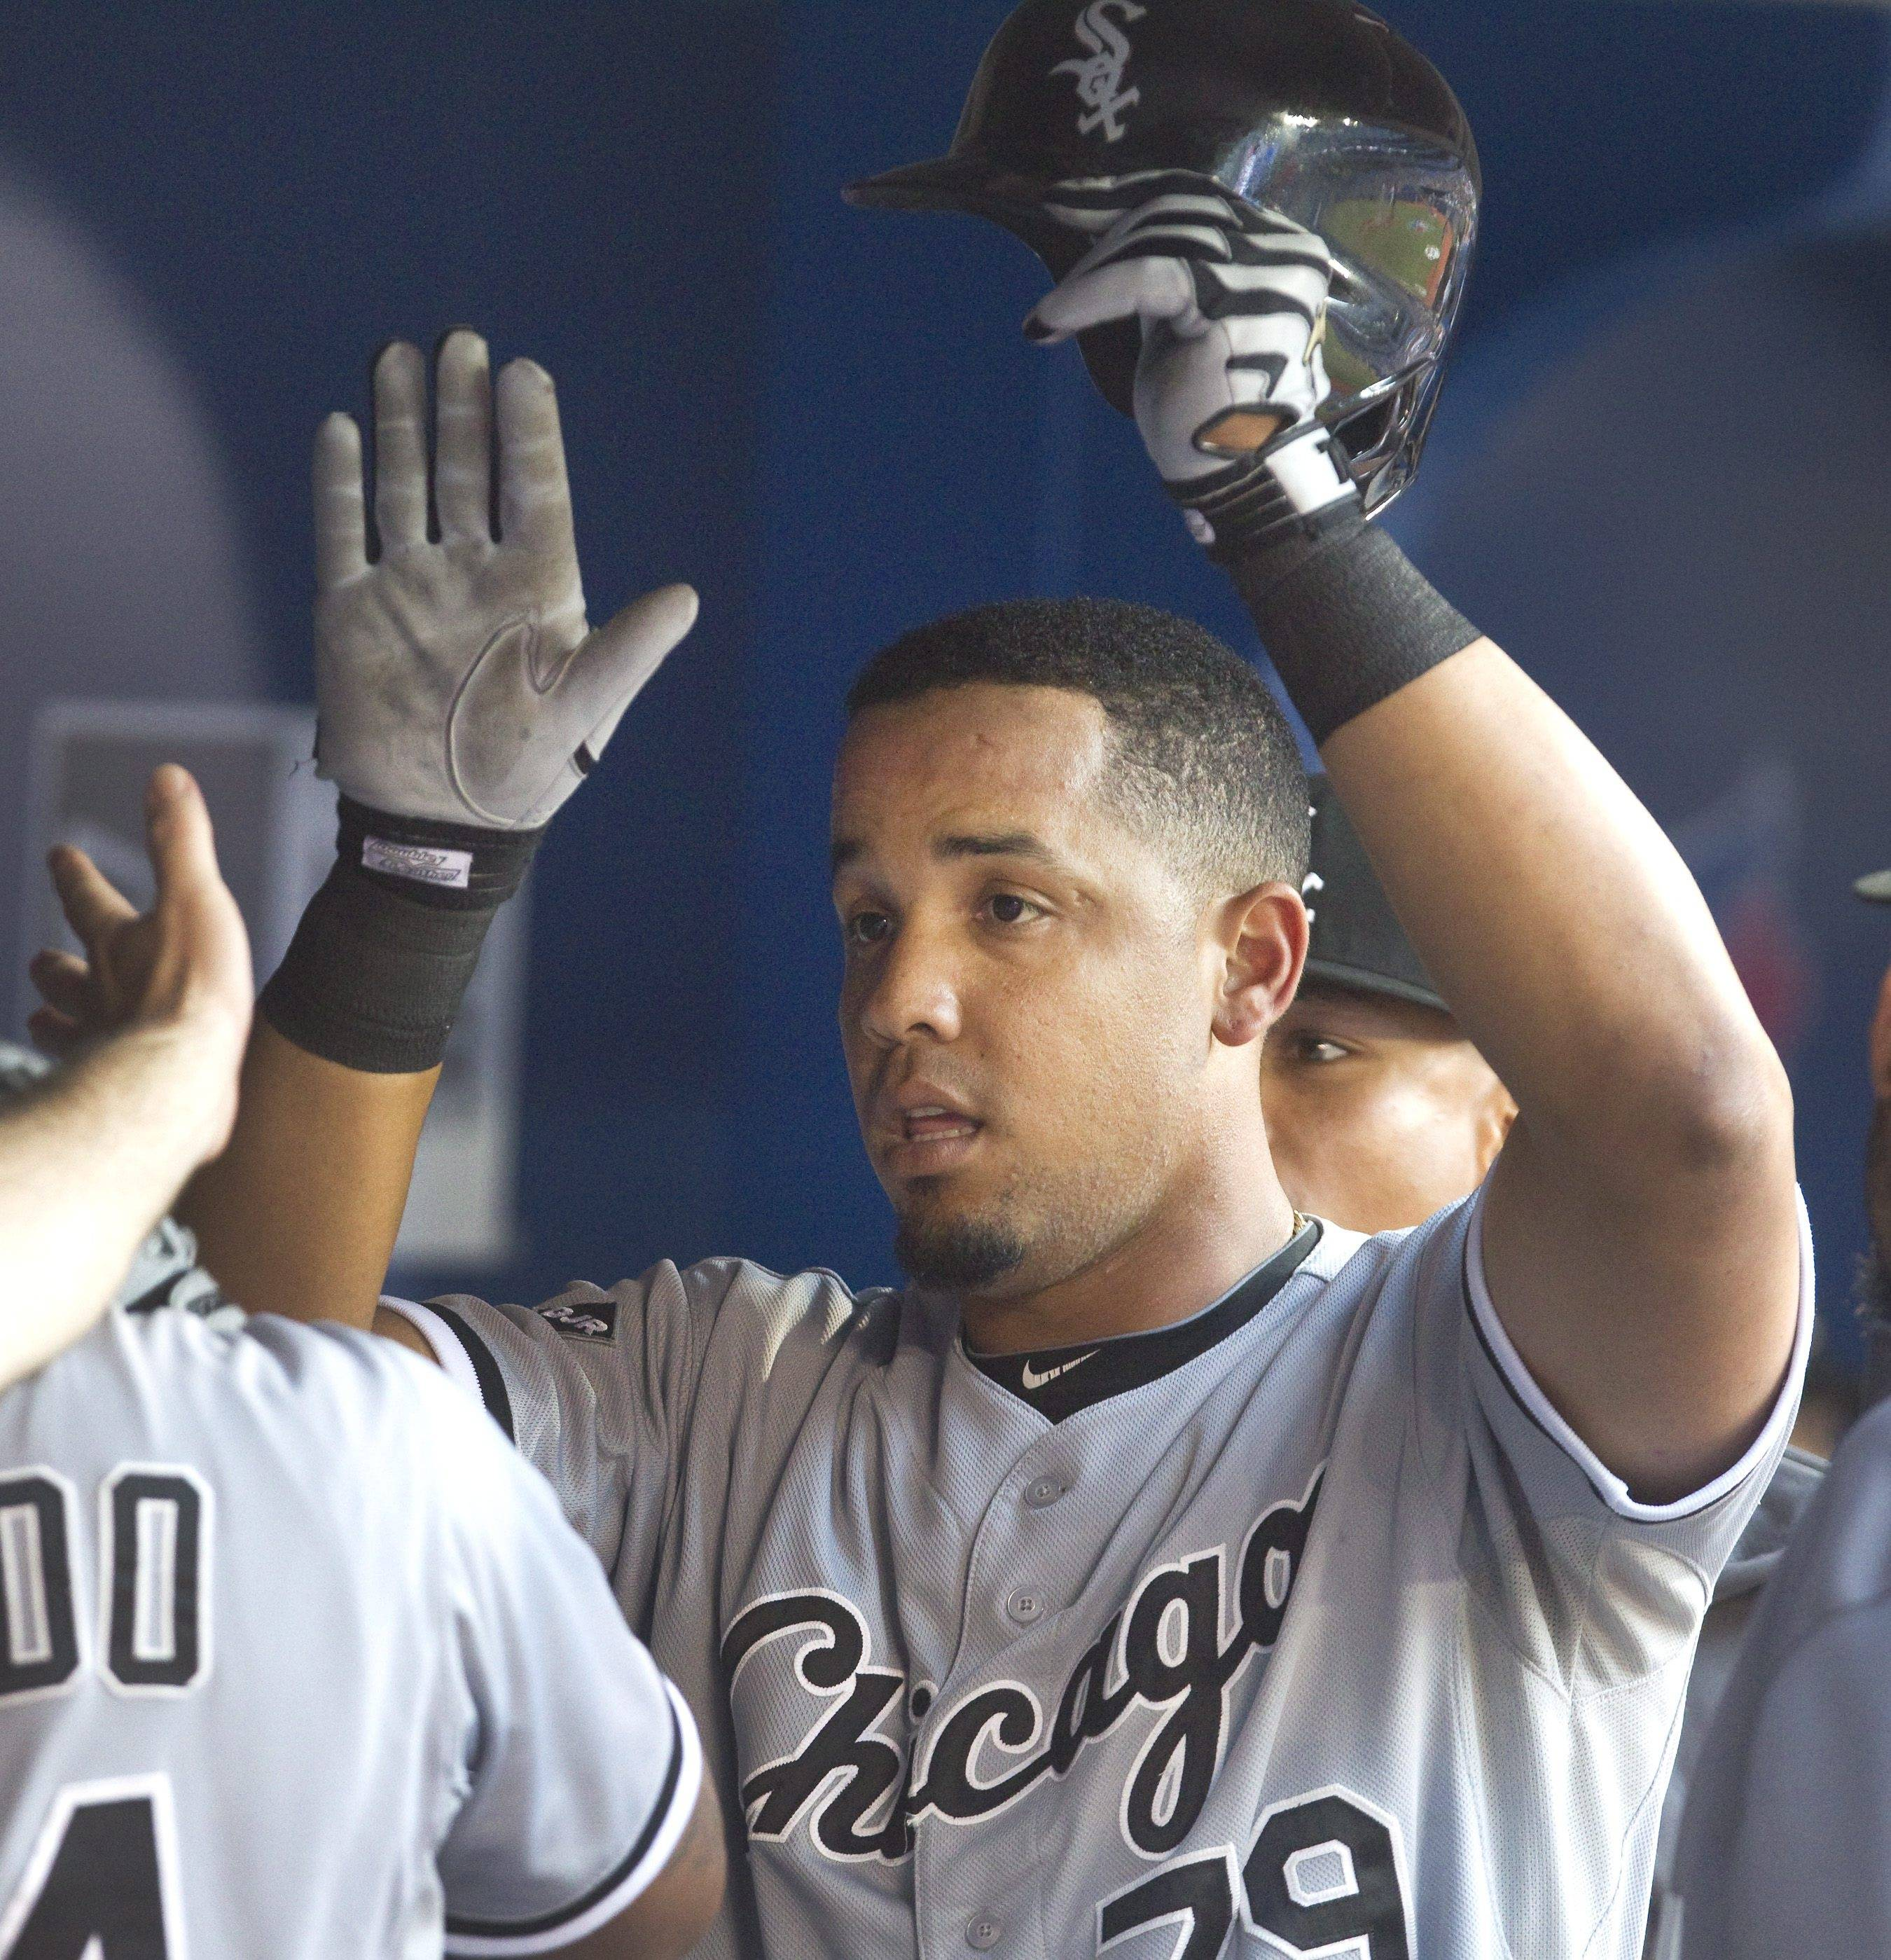 Chicago White Sox slugger Jose Abreu earned Rookie of the Year honors from The Sporting News. Abreu, 27, led the league in slugging percentage and had 36 home runs and 107 RBI for the Sox.